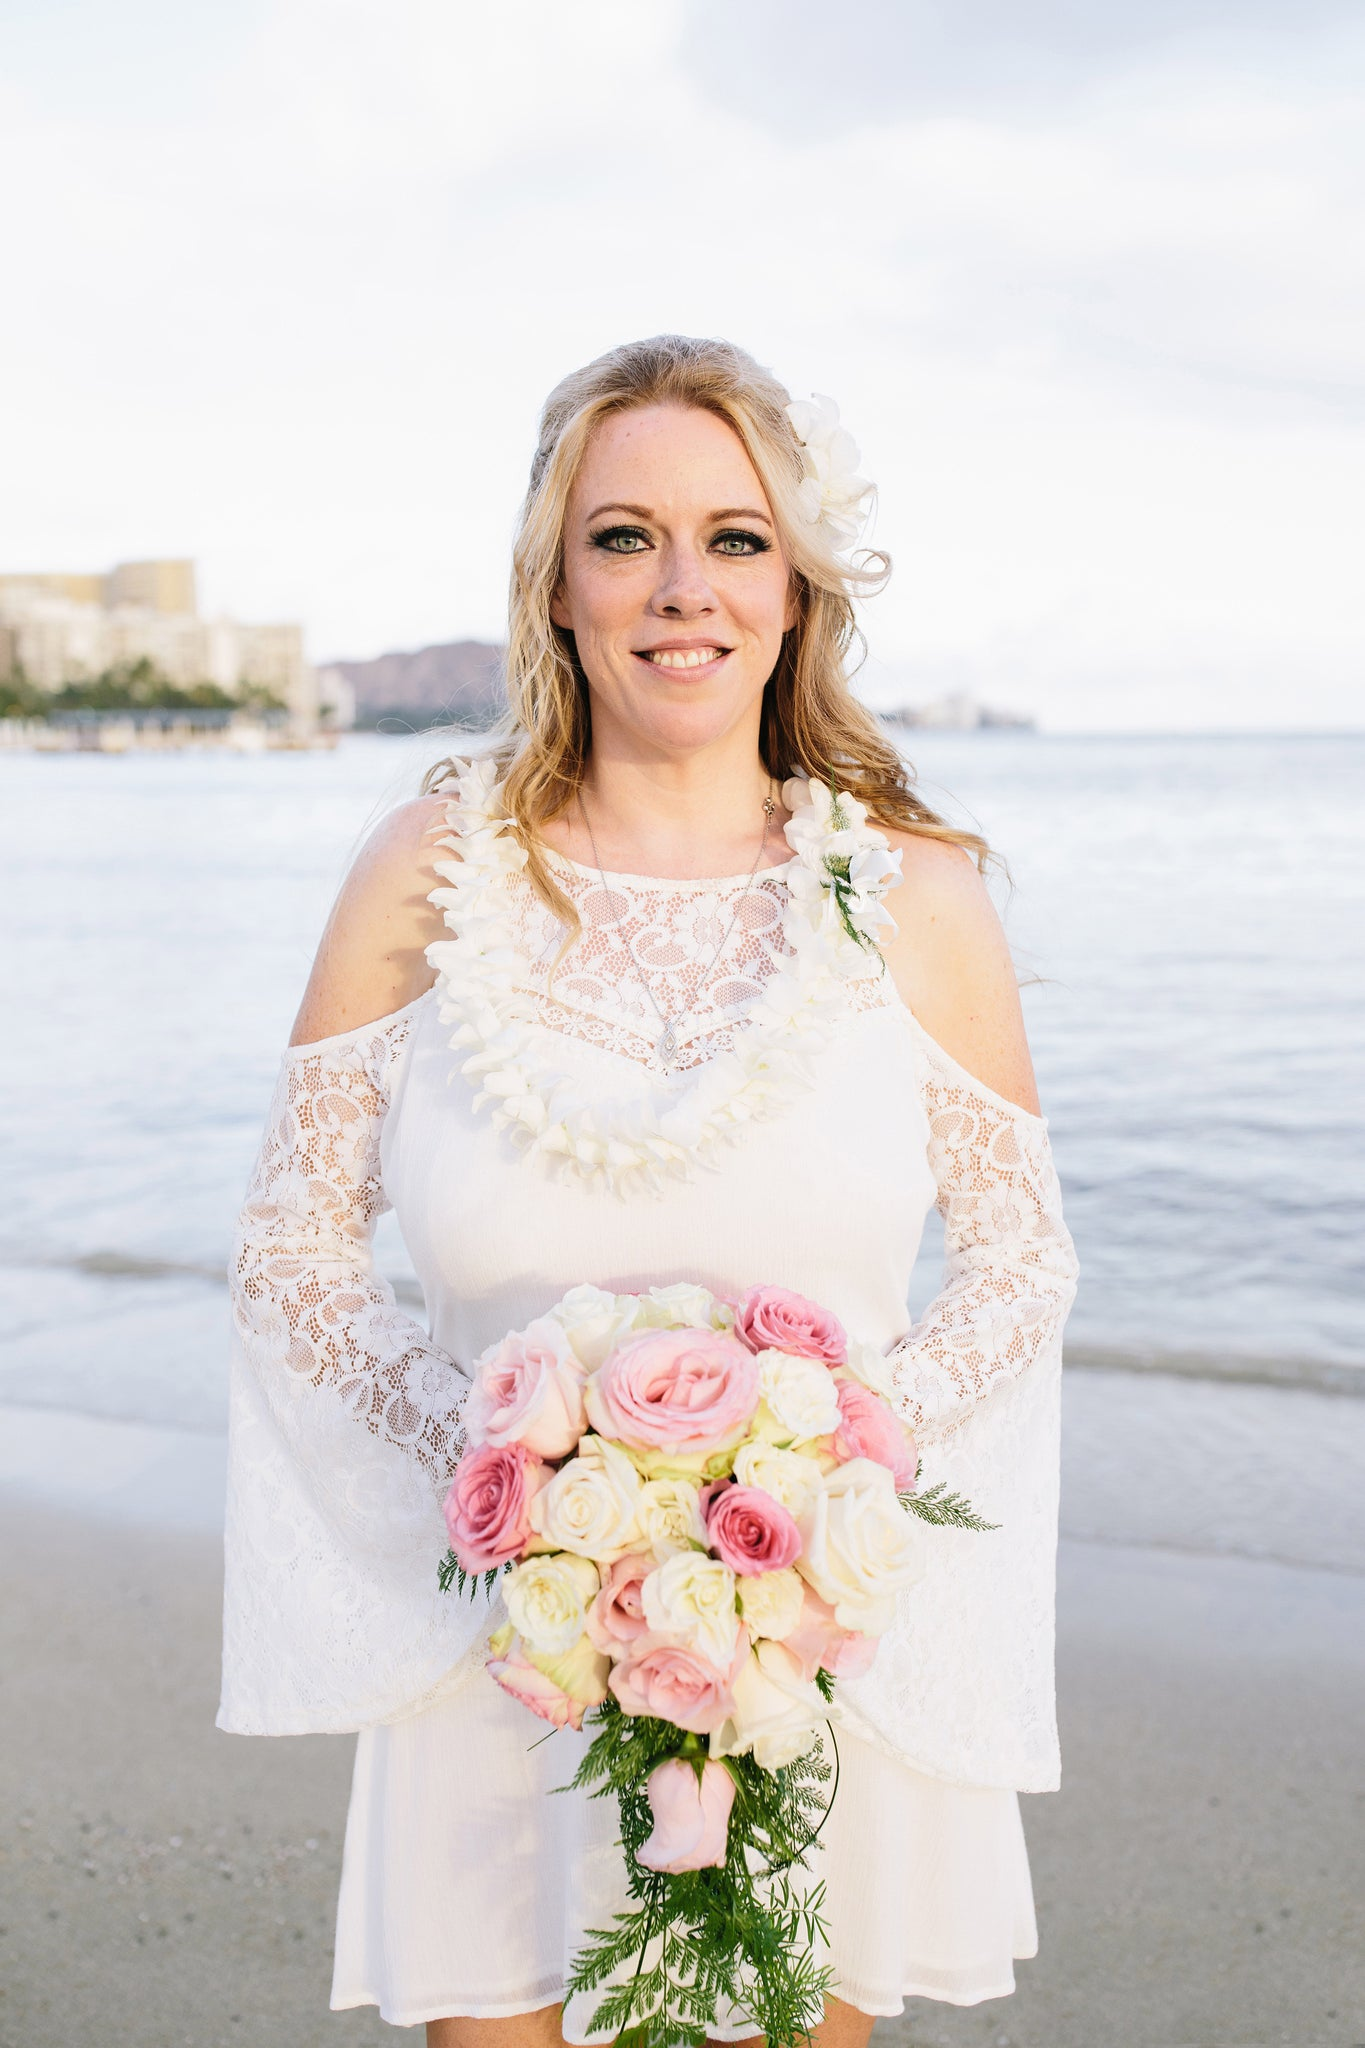 Bride poses with Rose Bouquet on Duke Kohanamoku Beach in Waikiki, Oahu, Hawaii